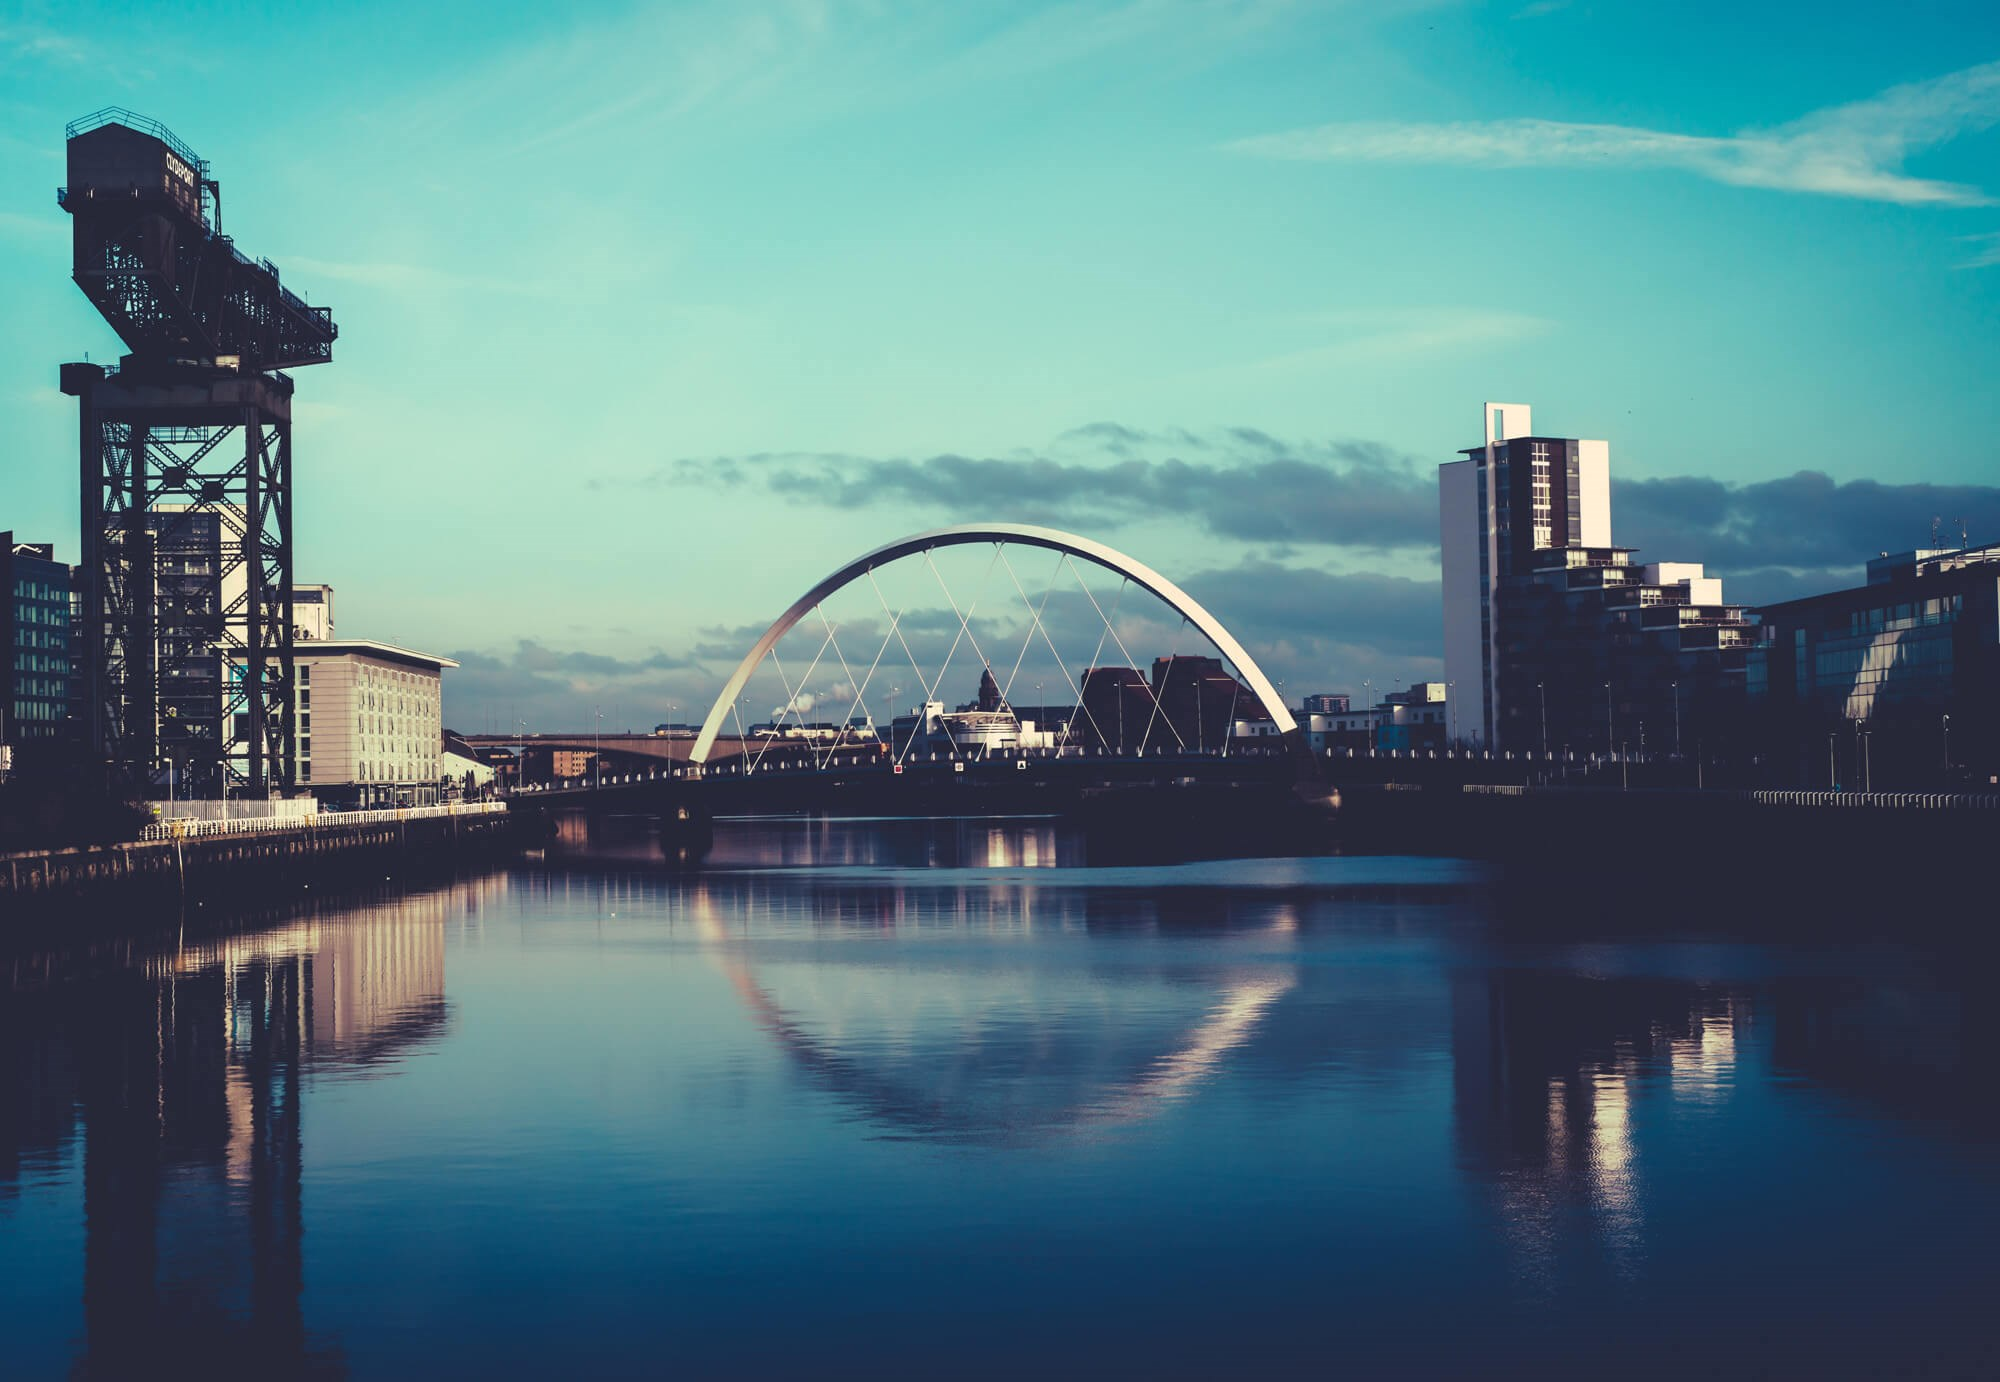 The Clyde Arc and River Clyde in Glasgow